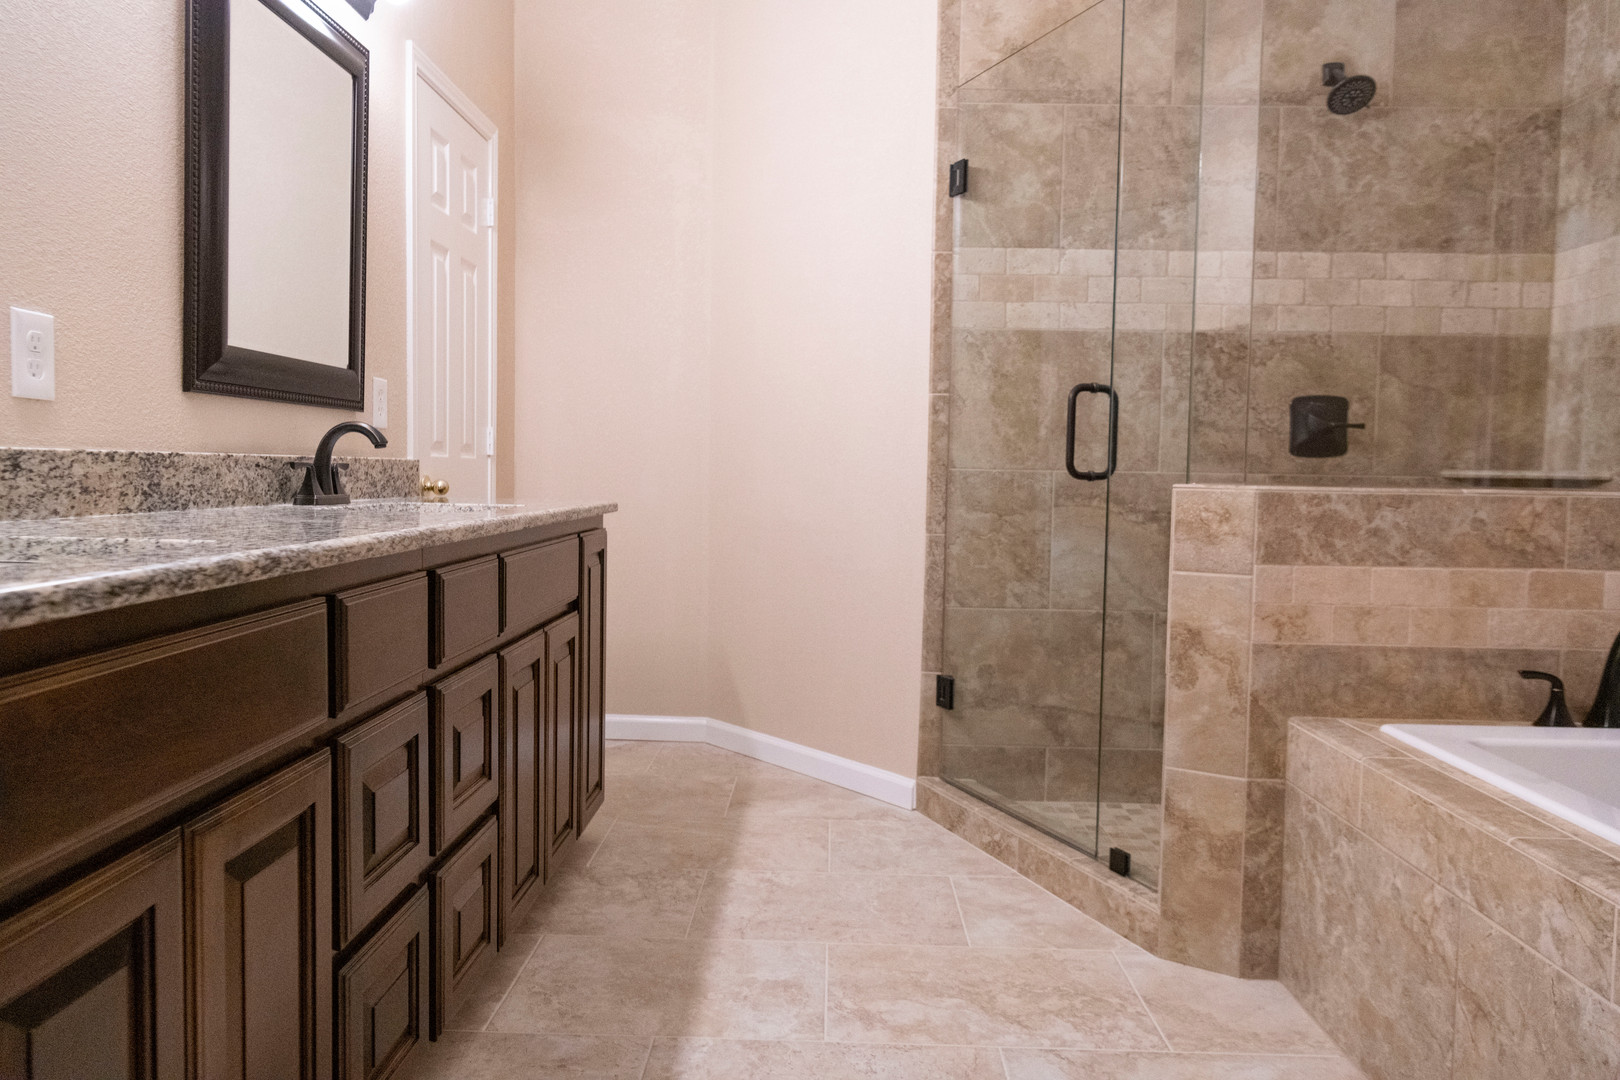 Bathroom Remodel After Picture